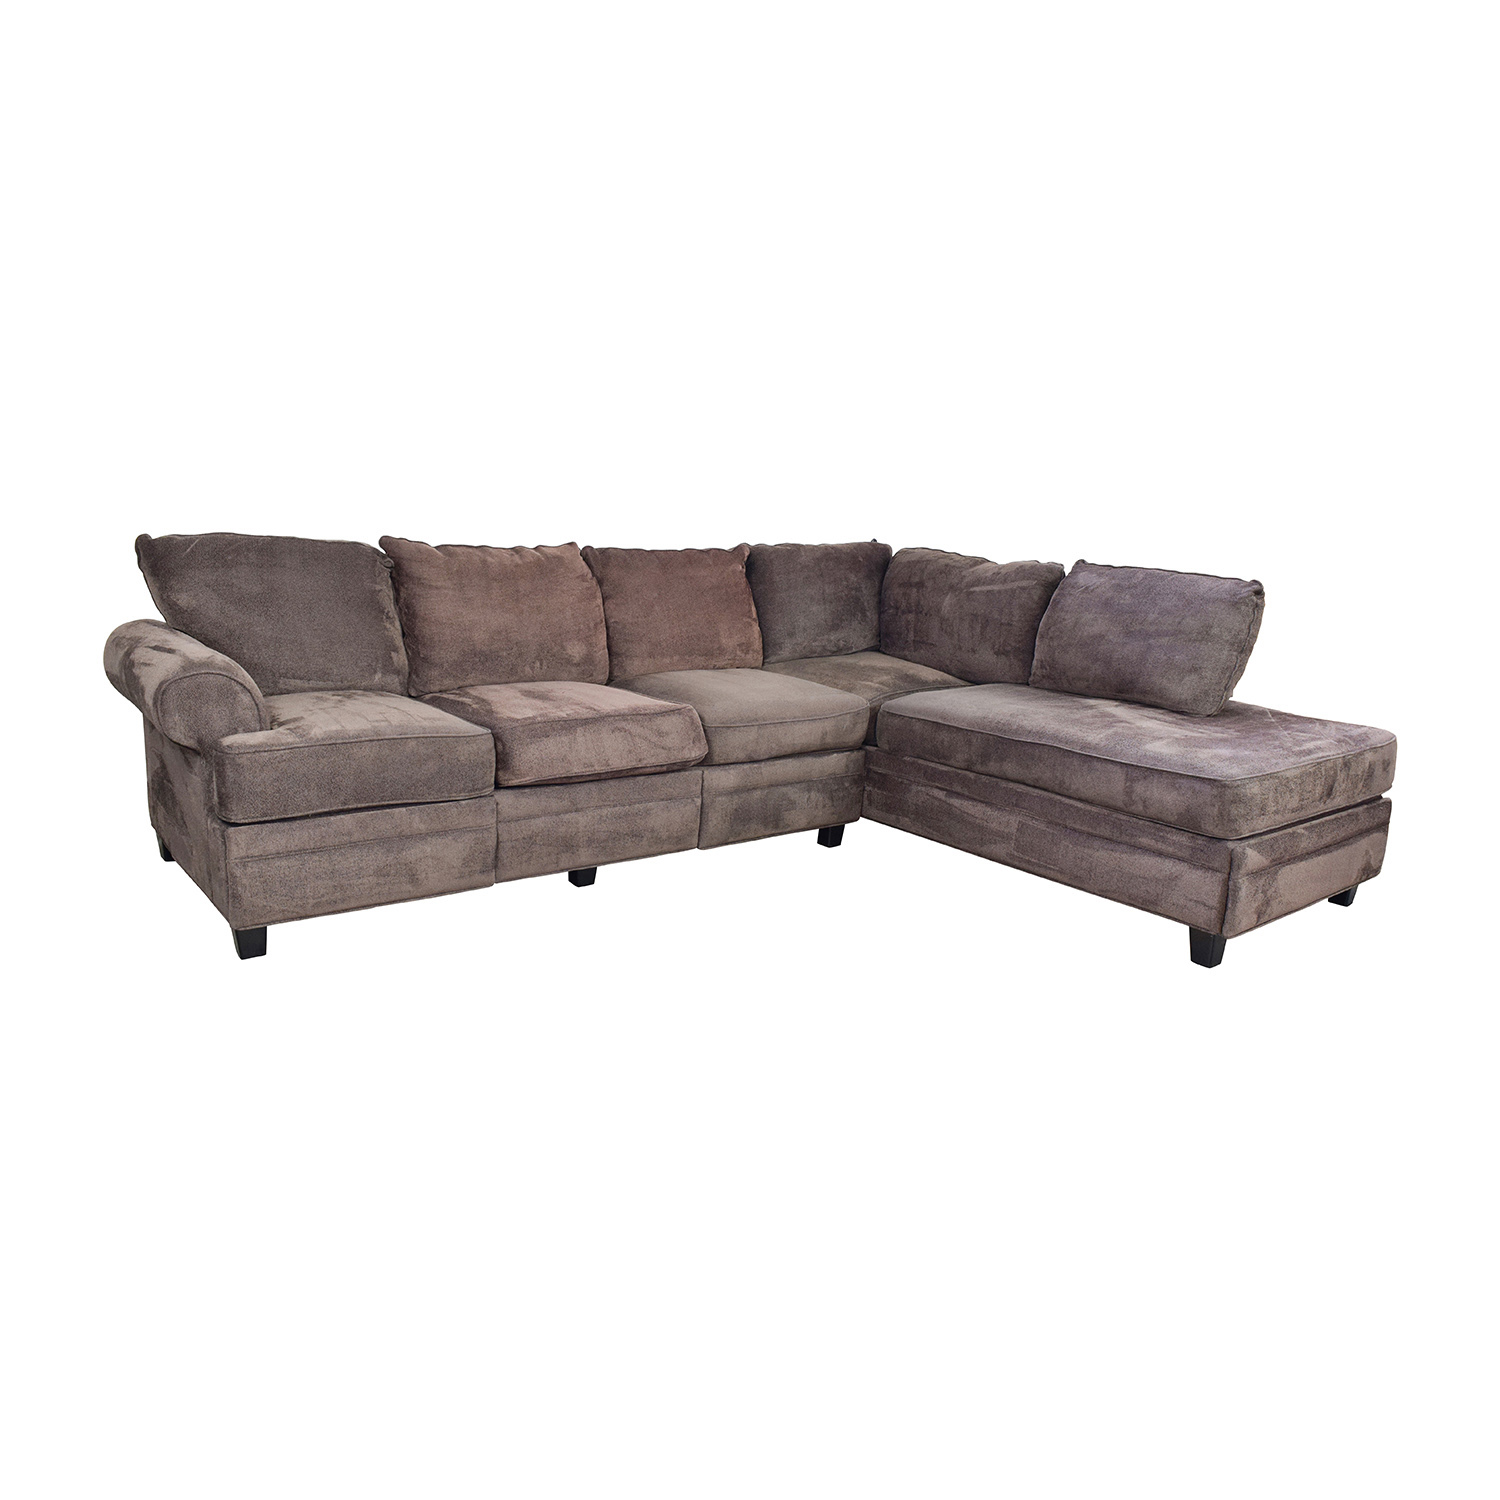 55 Off Bob 39 S Furniture Bob 39 S Furniture Brown Sectional With Storage Sofas